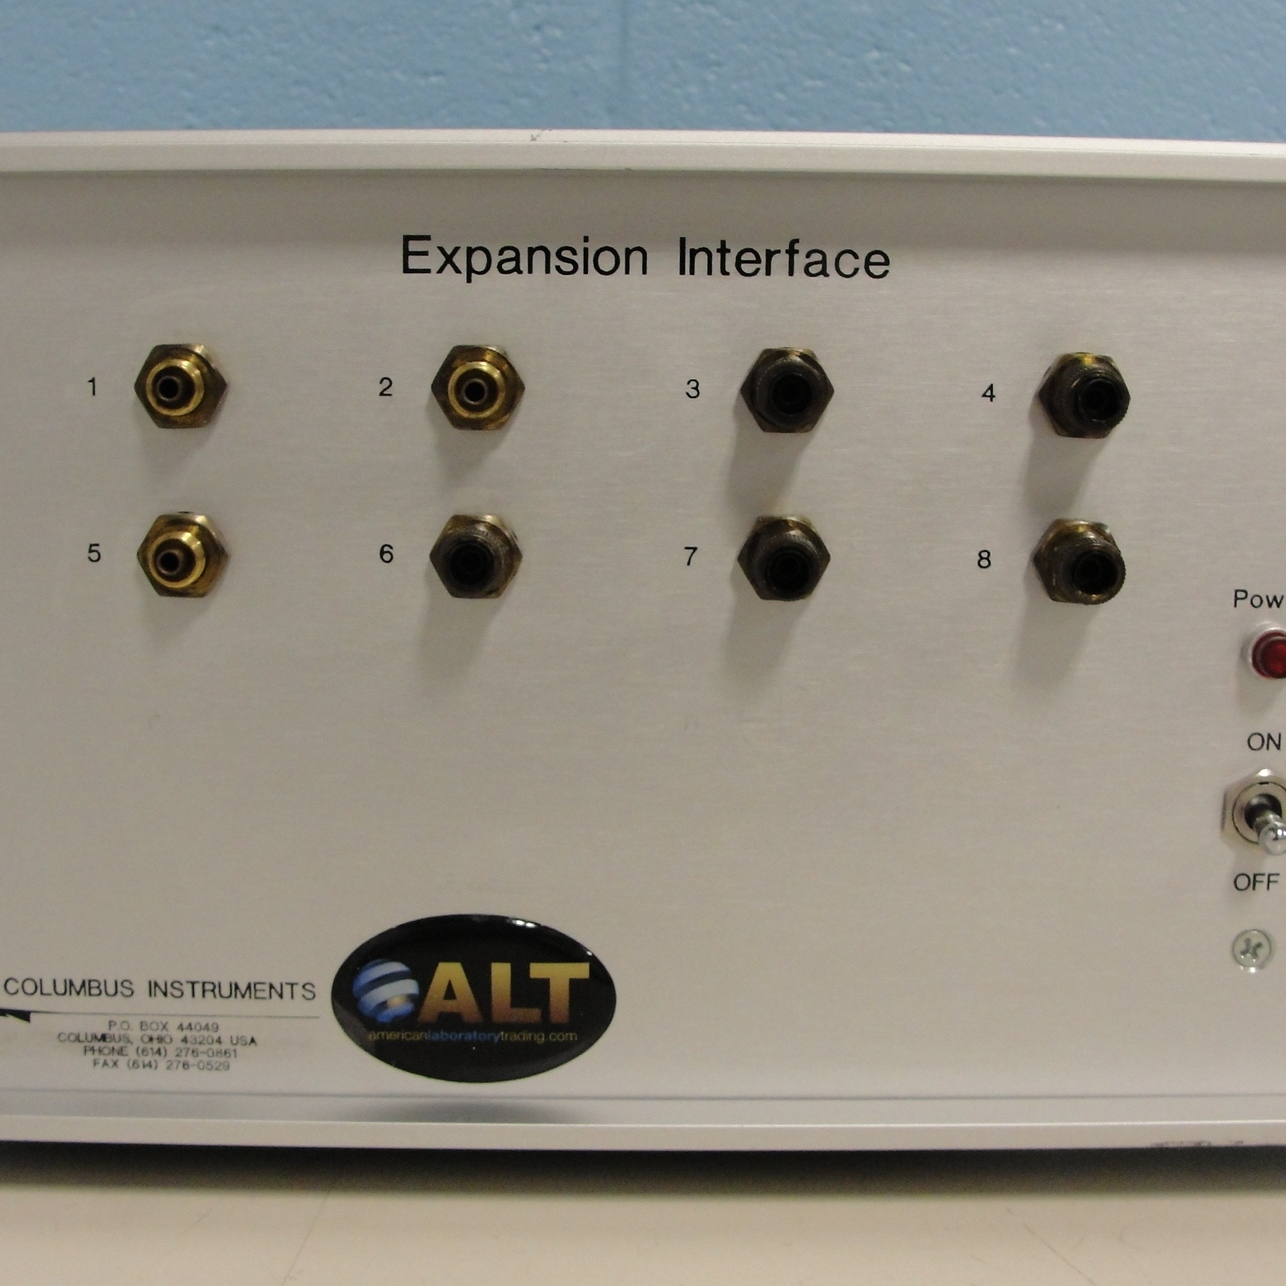 Columbus Instruments Expansion Interface Image